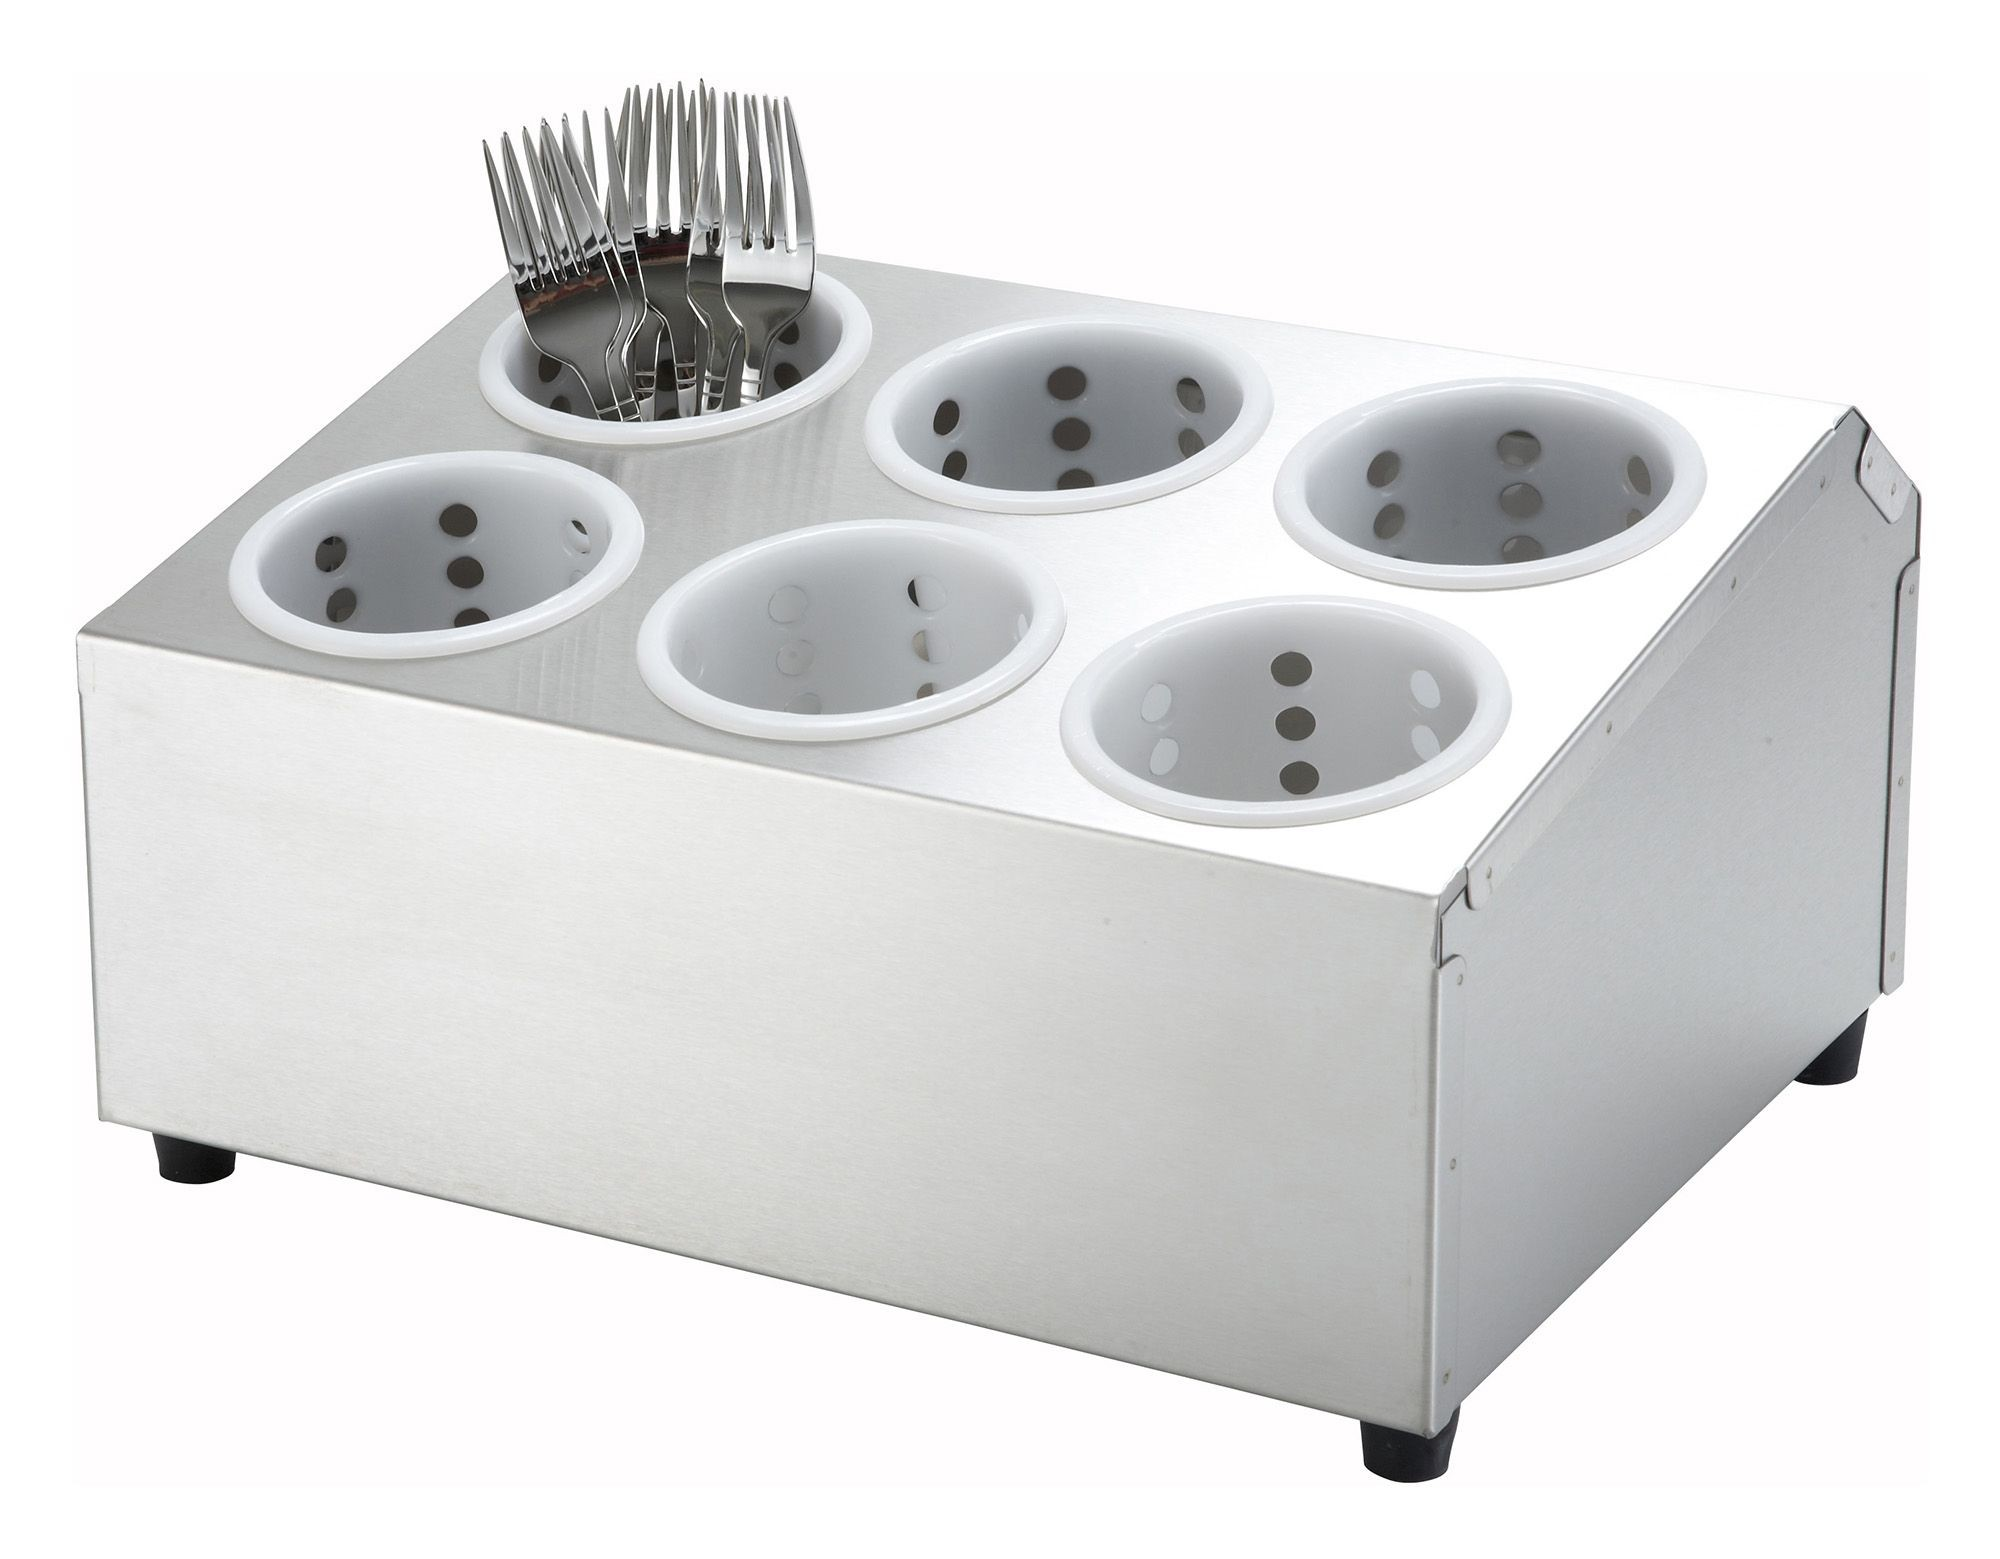 Six-Hole 2-Tier Flatware Cylinder Holder